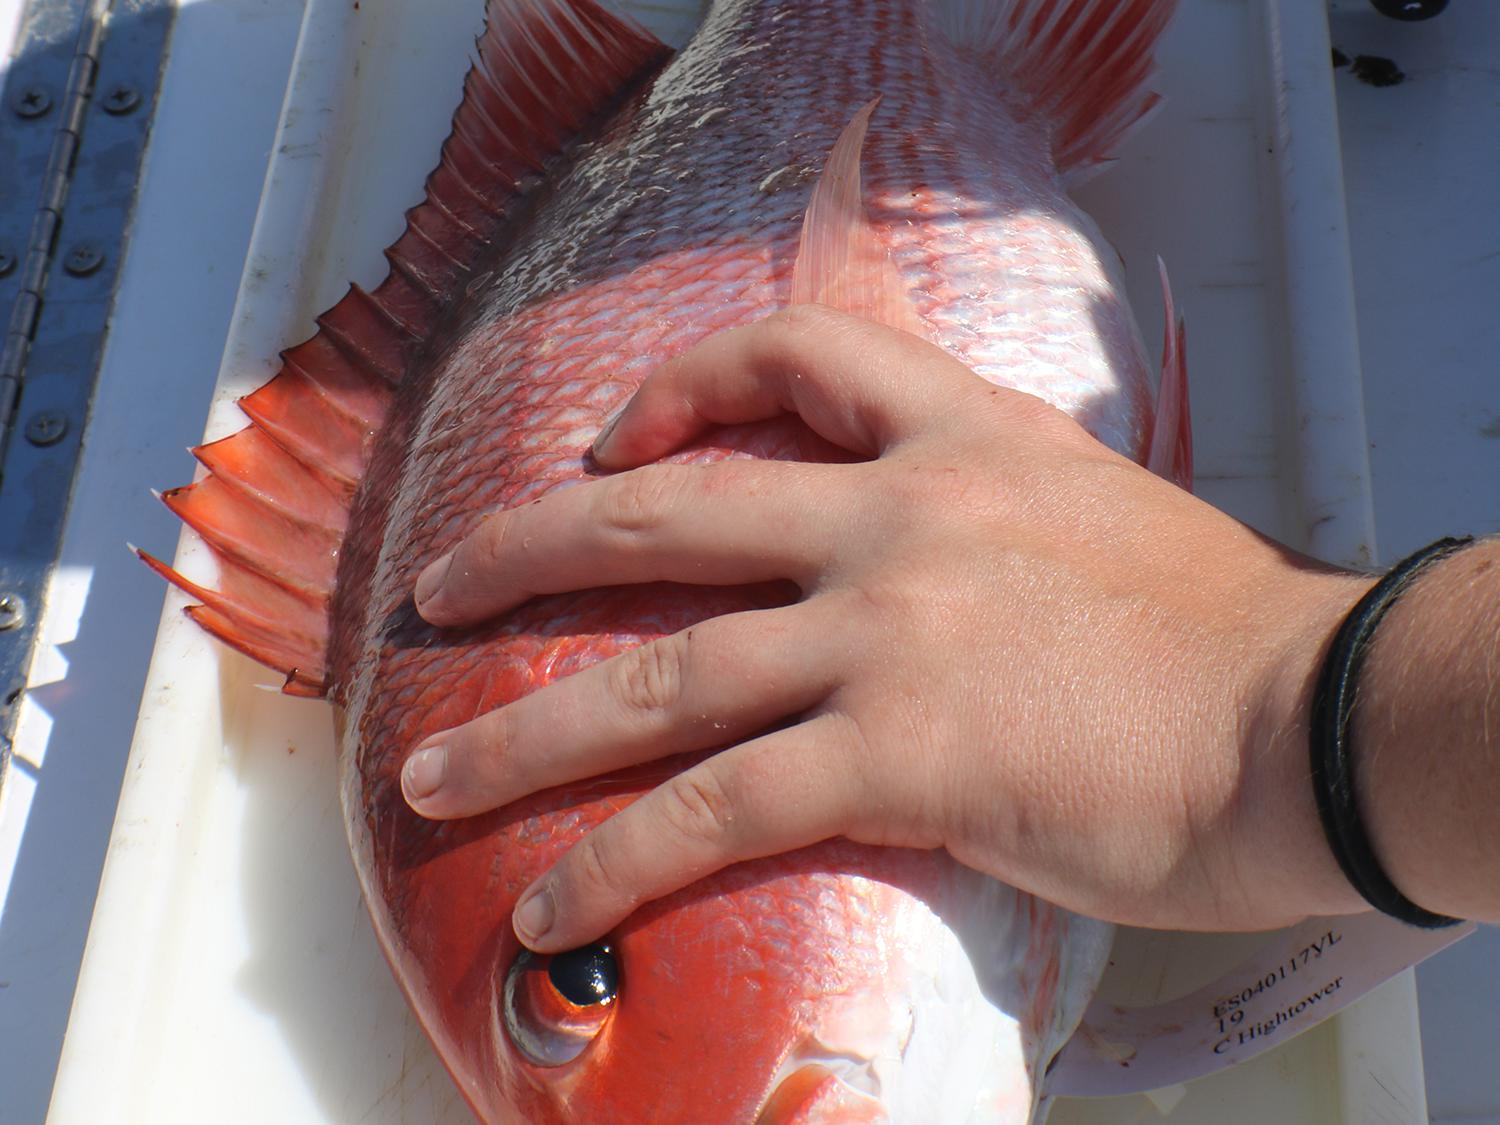 A left hand holds a mostly red fish down with a right hand marking the tail's end on a measuring tape.